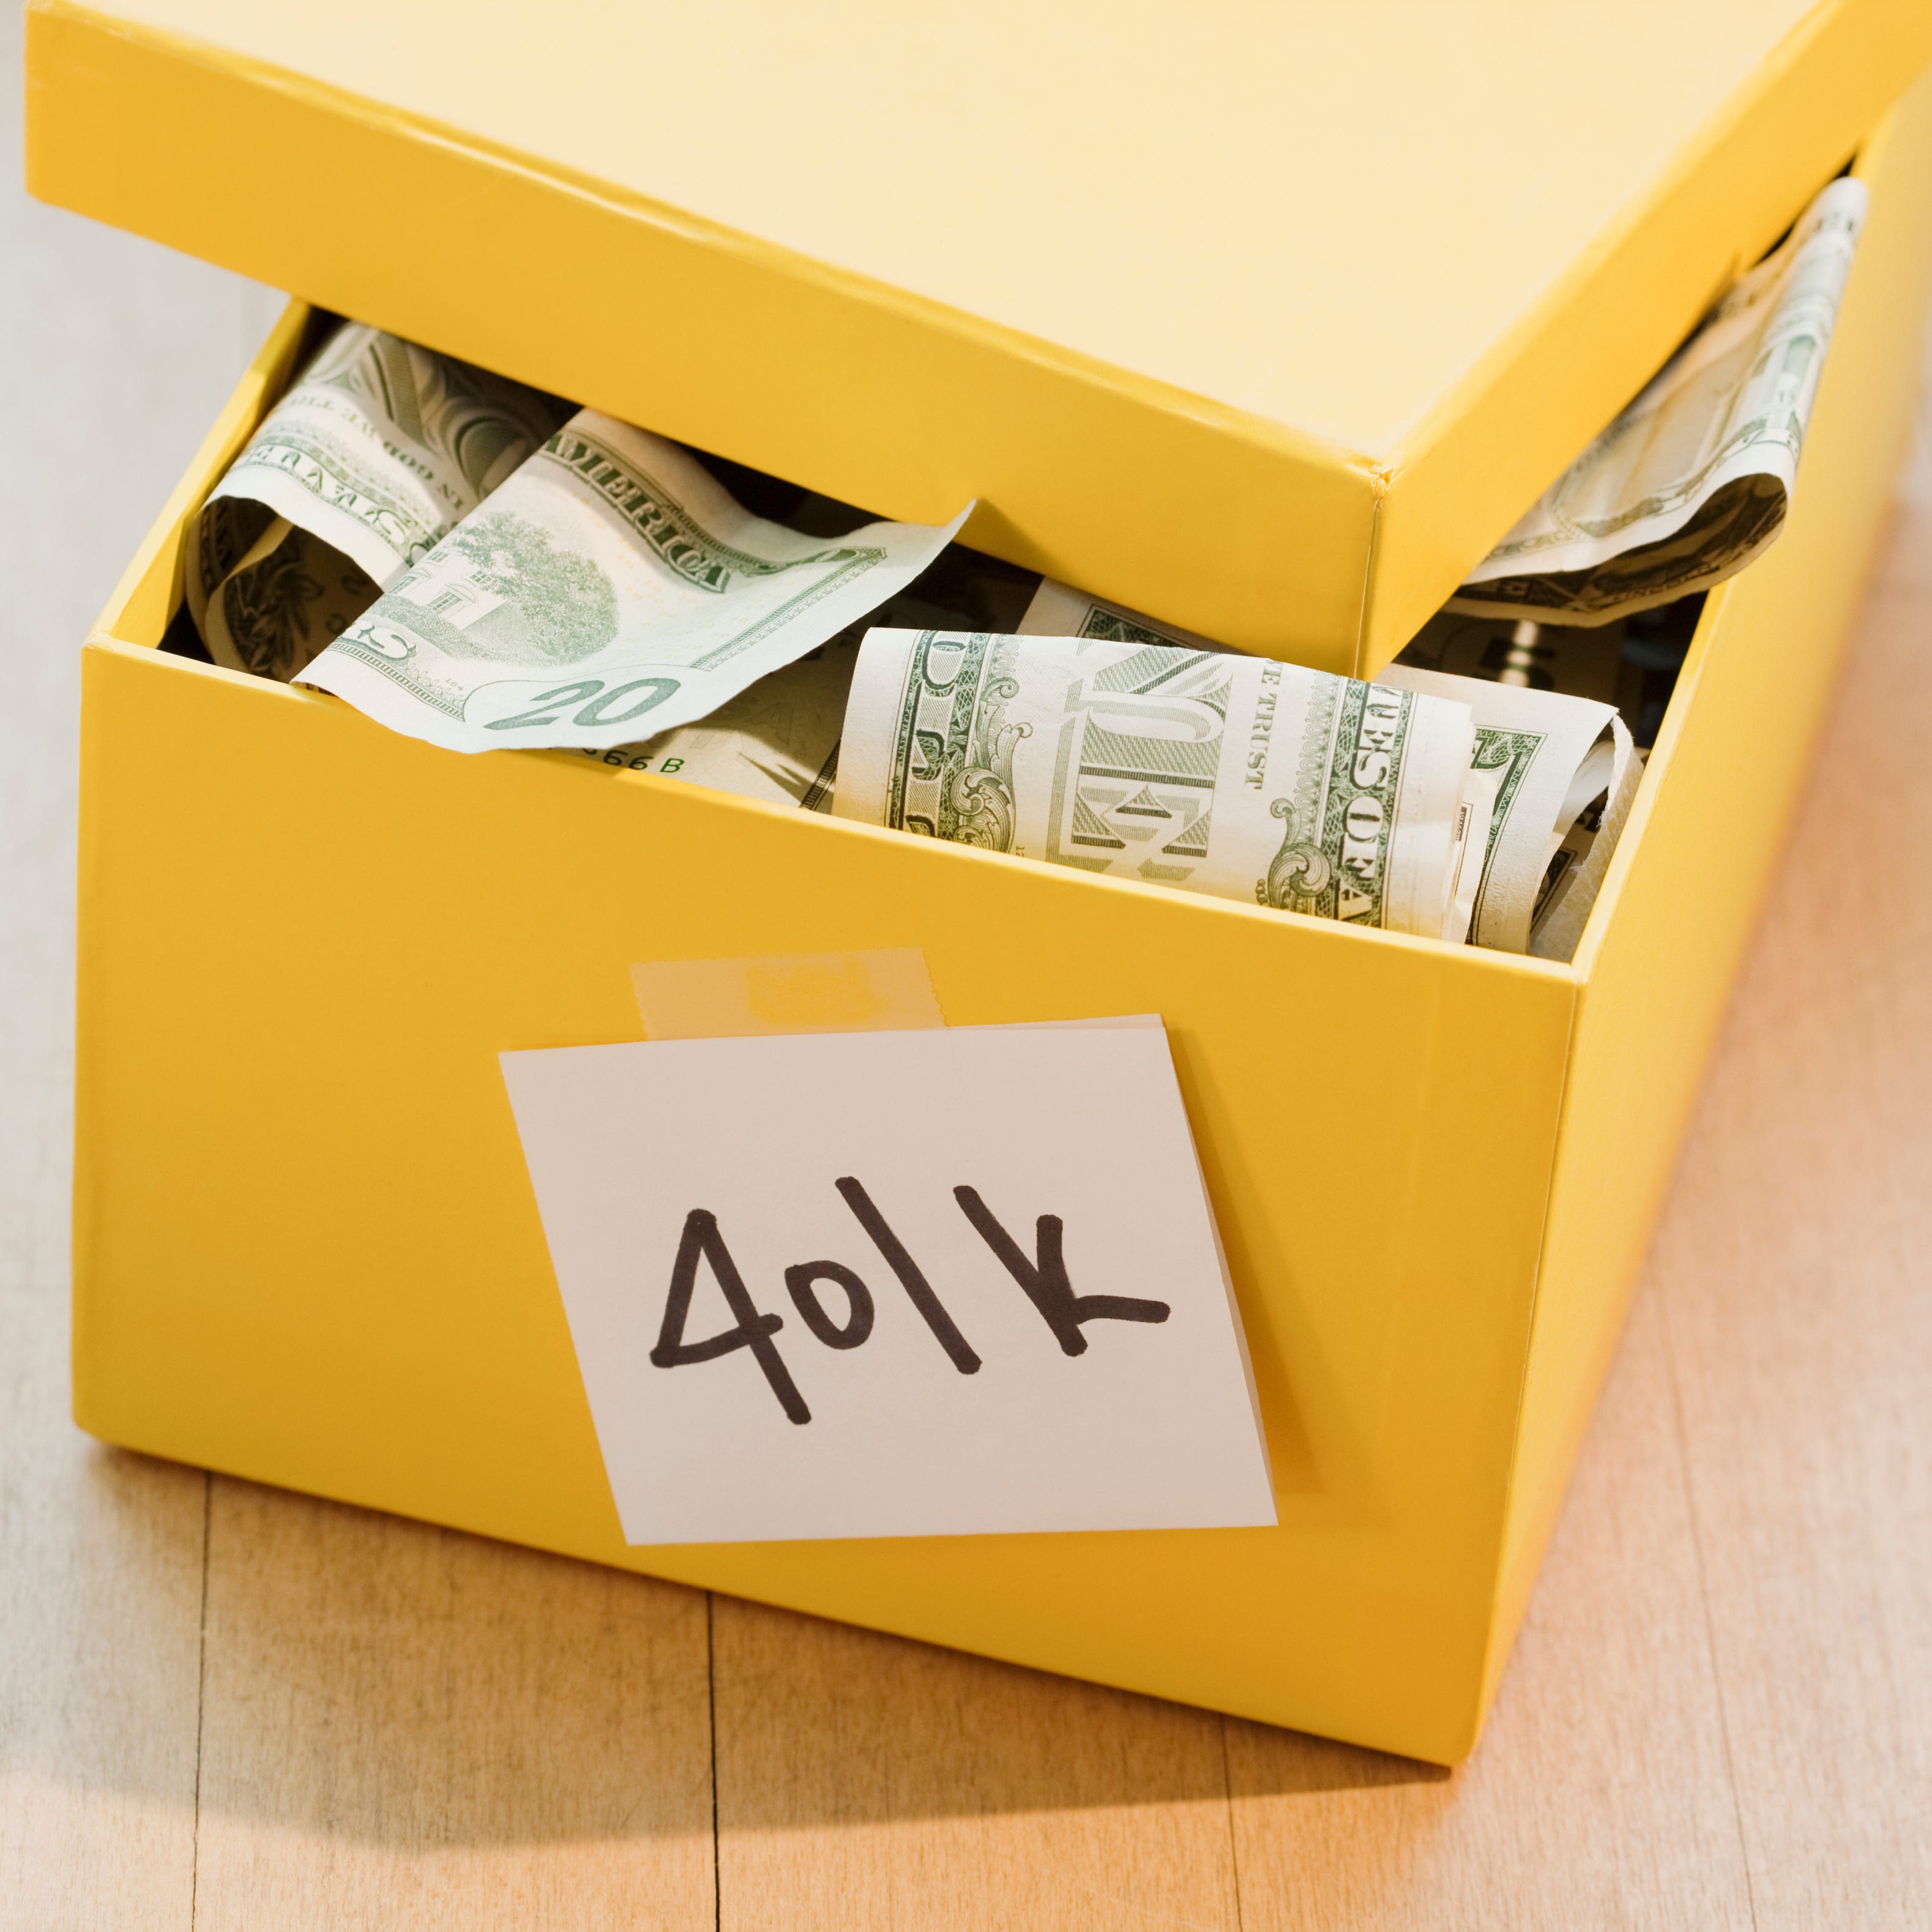 Tapping into 401(k)s early is tempting but perilous